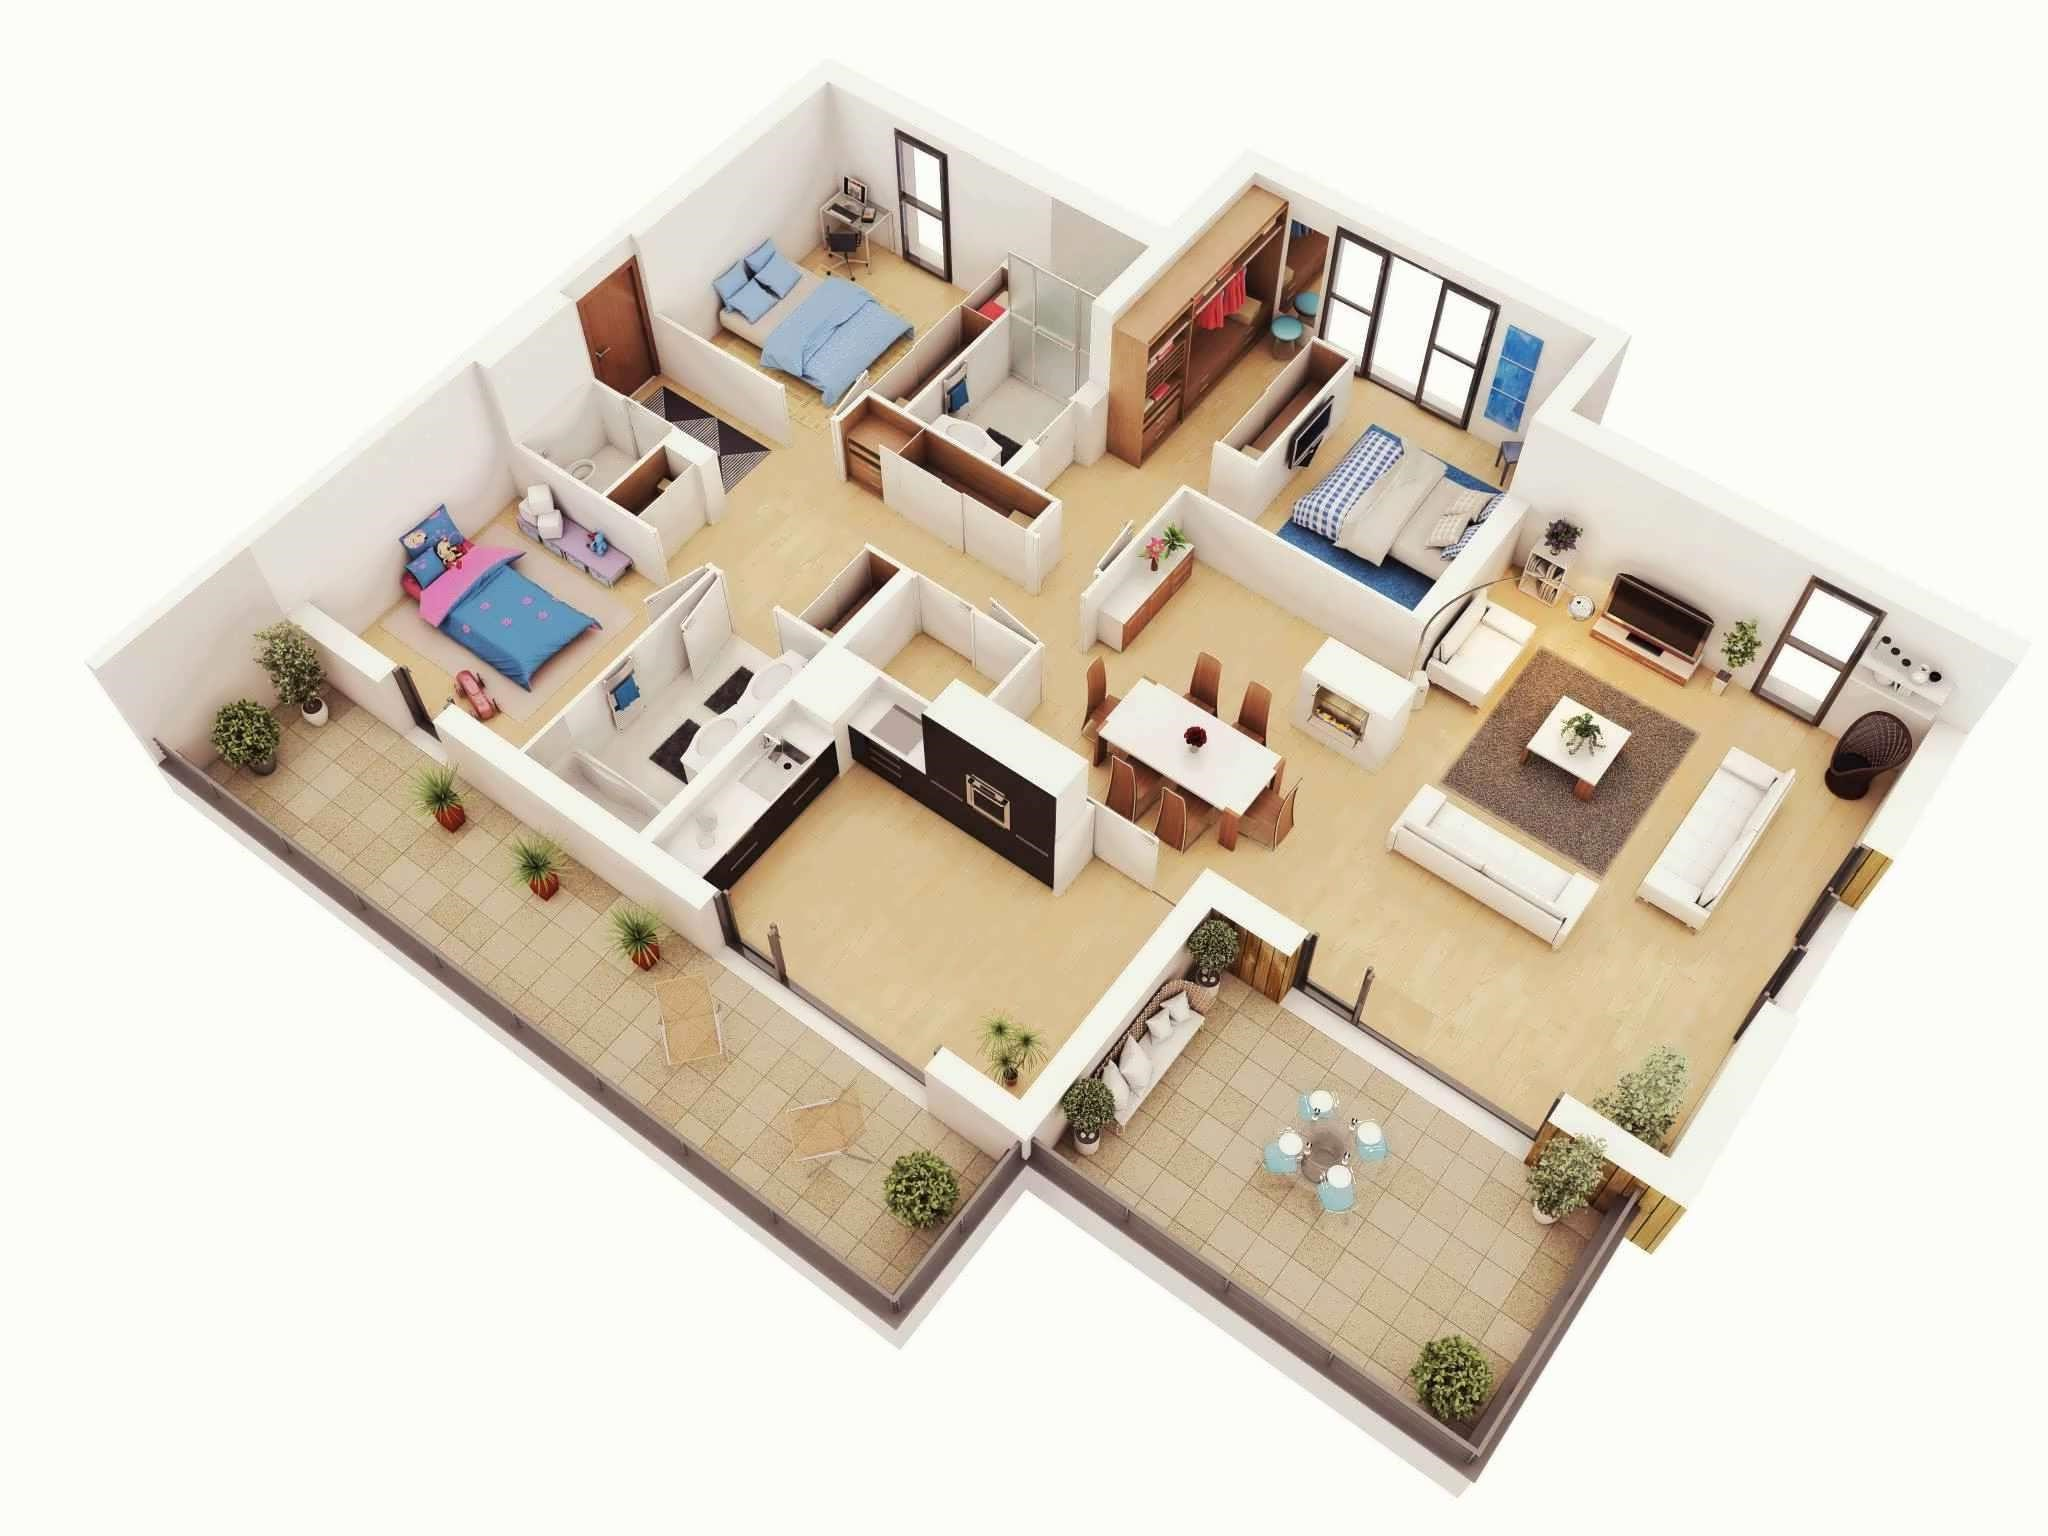 2048x1536 Floor Plan Design. Floor Plan Design S